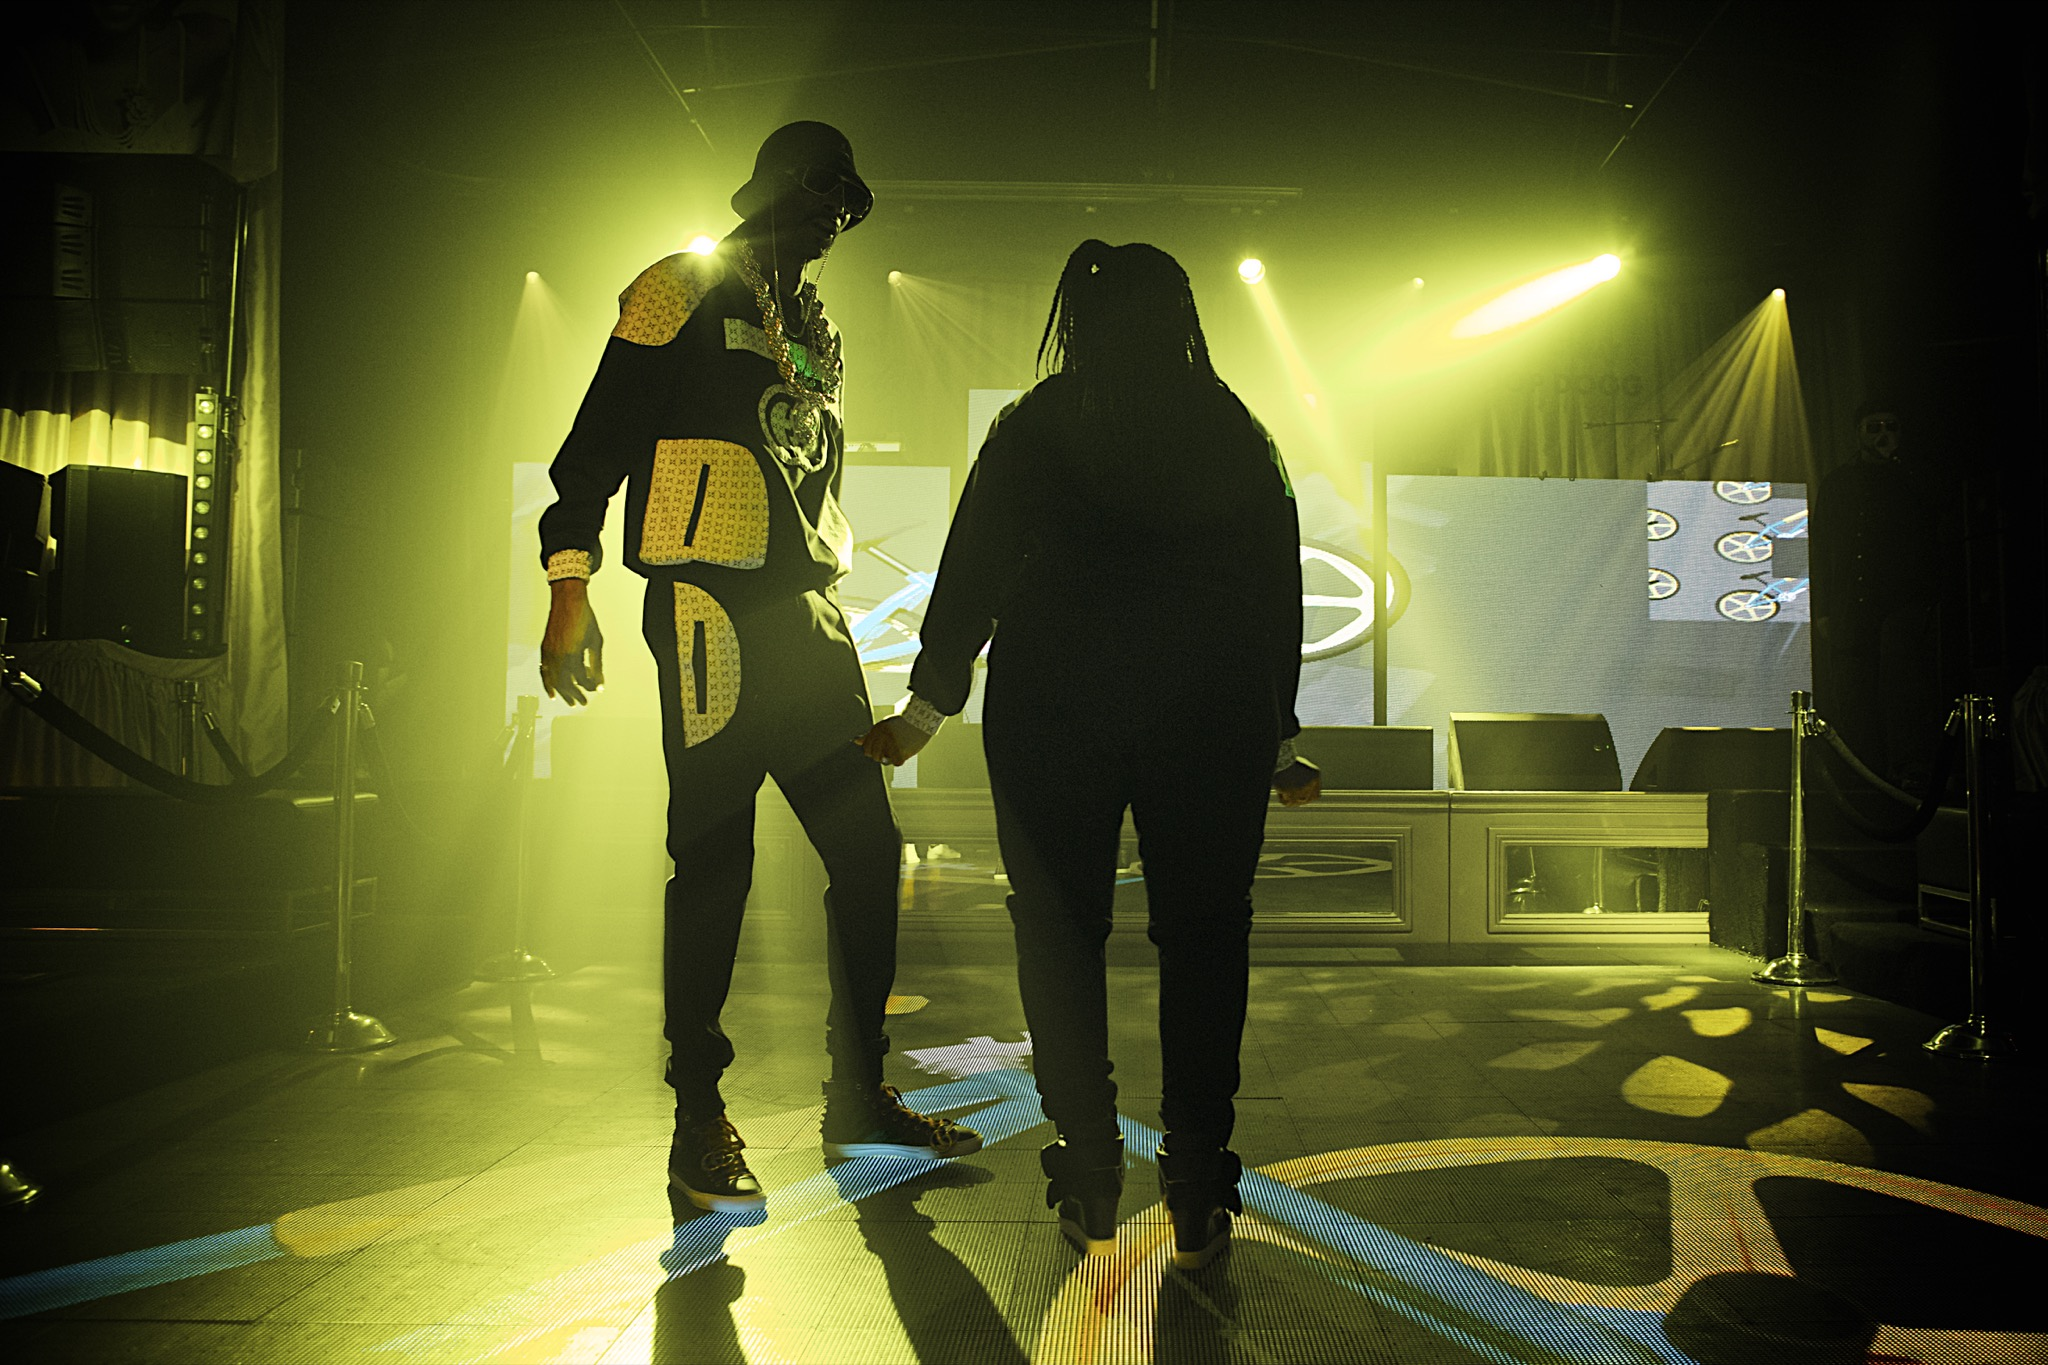 King Ice at Snoop Dogg C Day Party.35.jpg